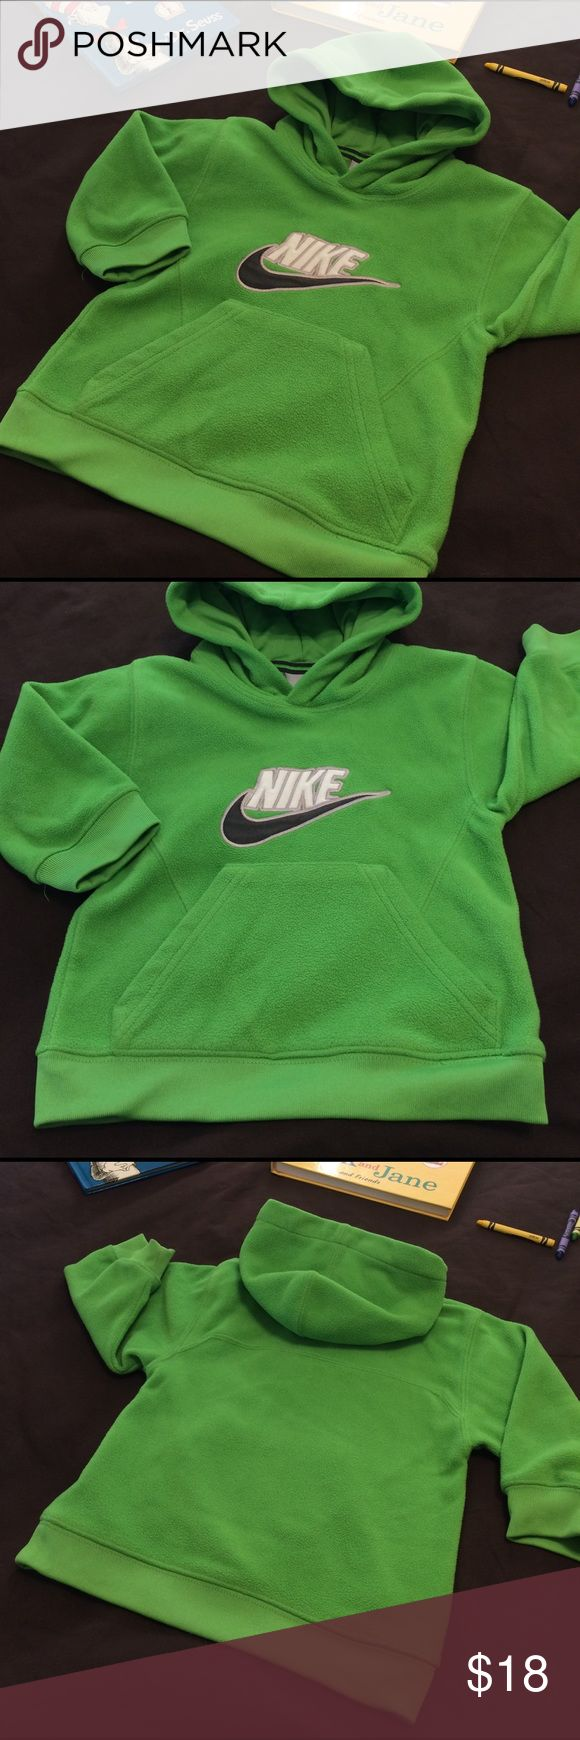 Nike Fleece Hoodie Pullover EUC bright green Nike fleece hoodie pullover top. White logo embroidered Nike on front with Olive green signature Swoosh. Perfect to toss on after practice or the big game. Also great to have on hand when you just want a warm layer. Tag says 2T but should fit to 3T since it's the same size as other 3T pieces. Nike Shirts & Tops